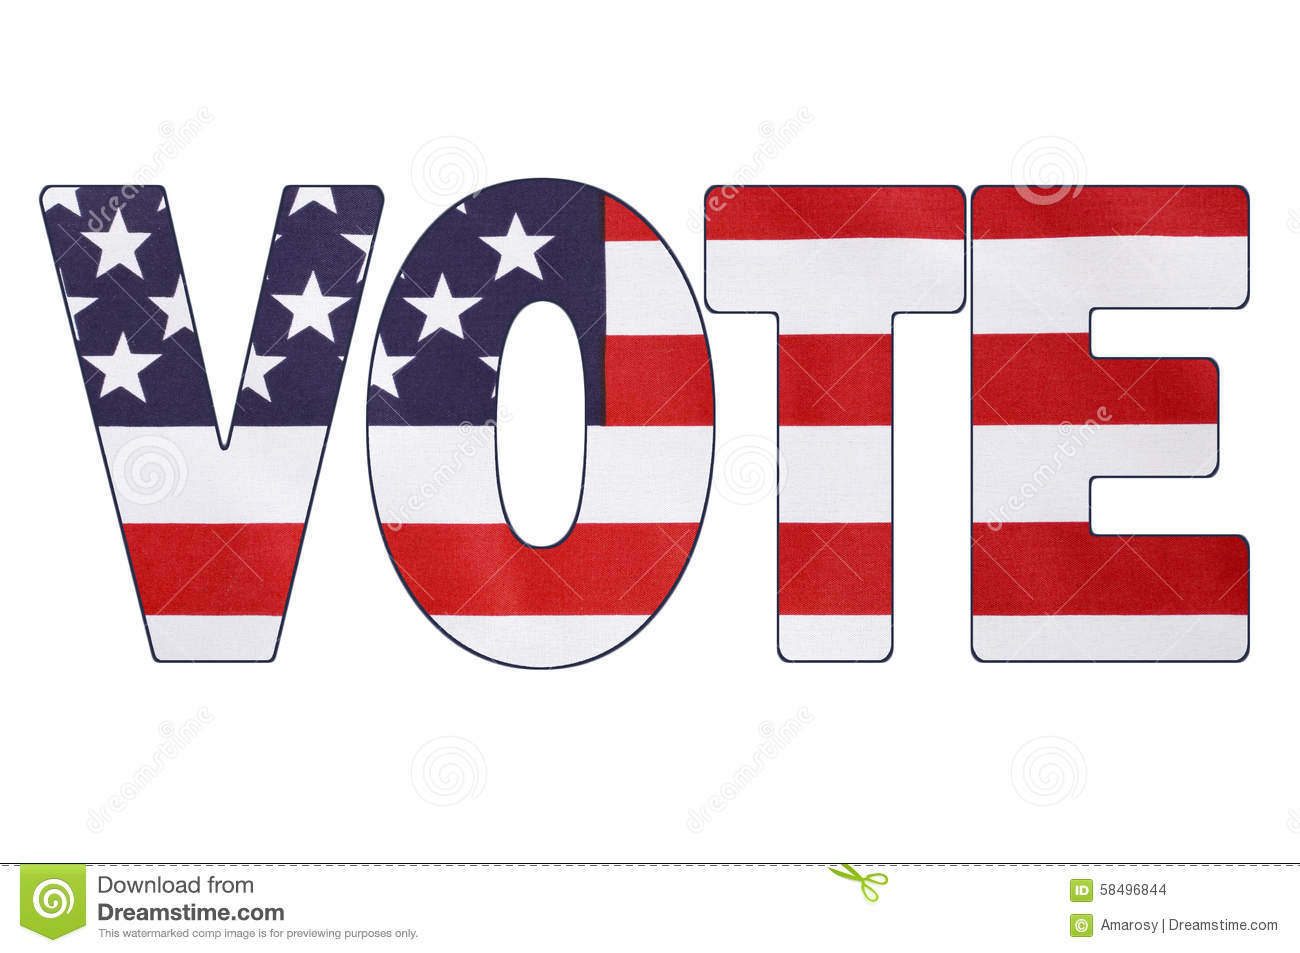 Presidents clipart the word Elect%20clipart Images President Clipart Elect